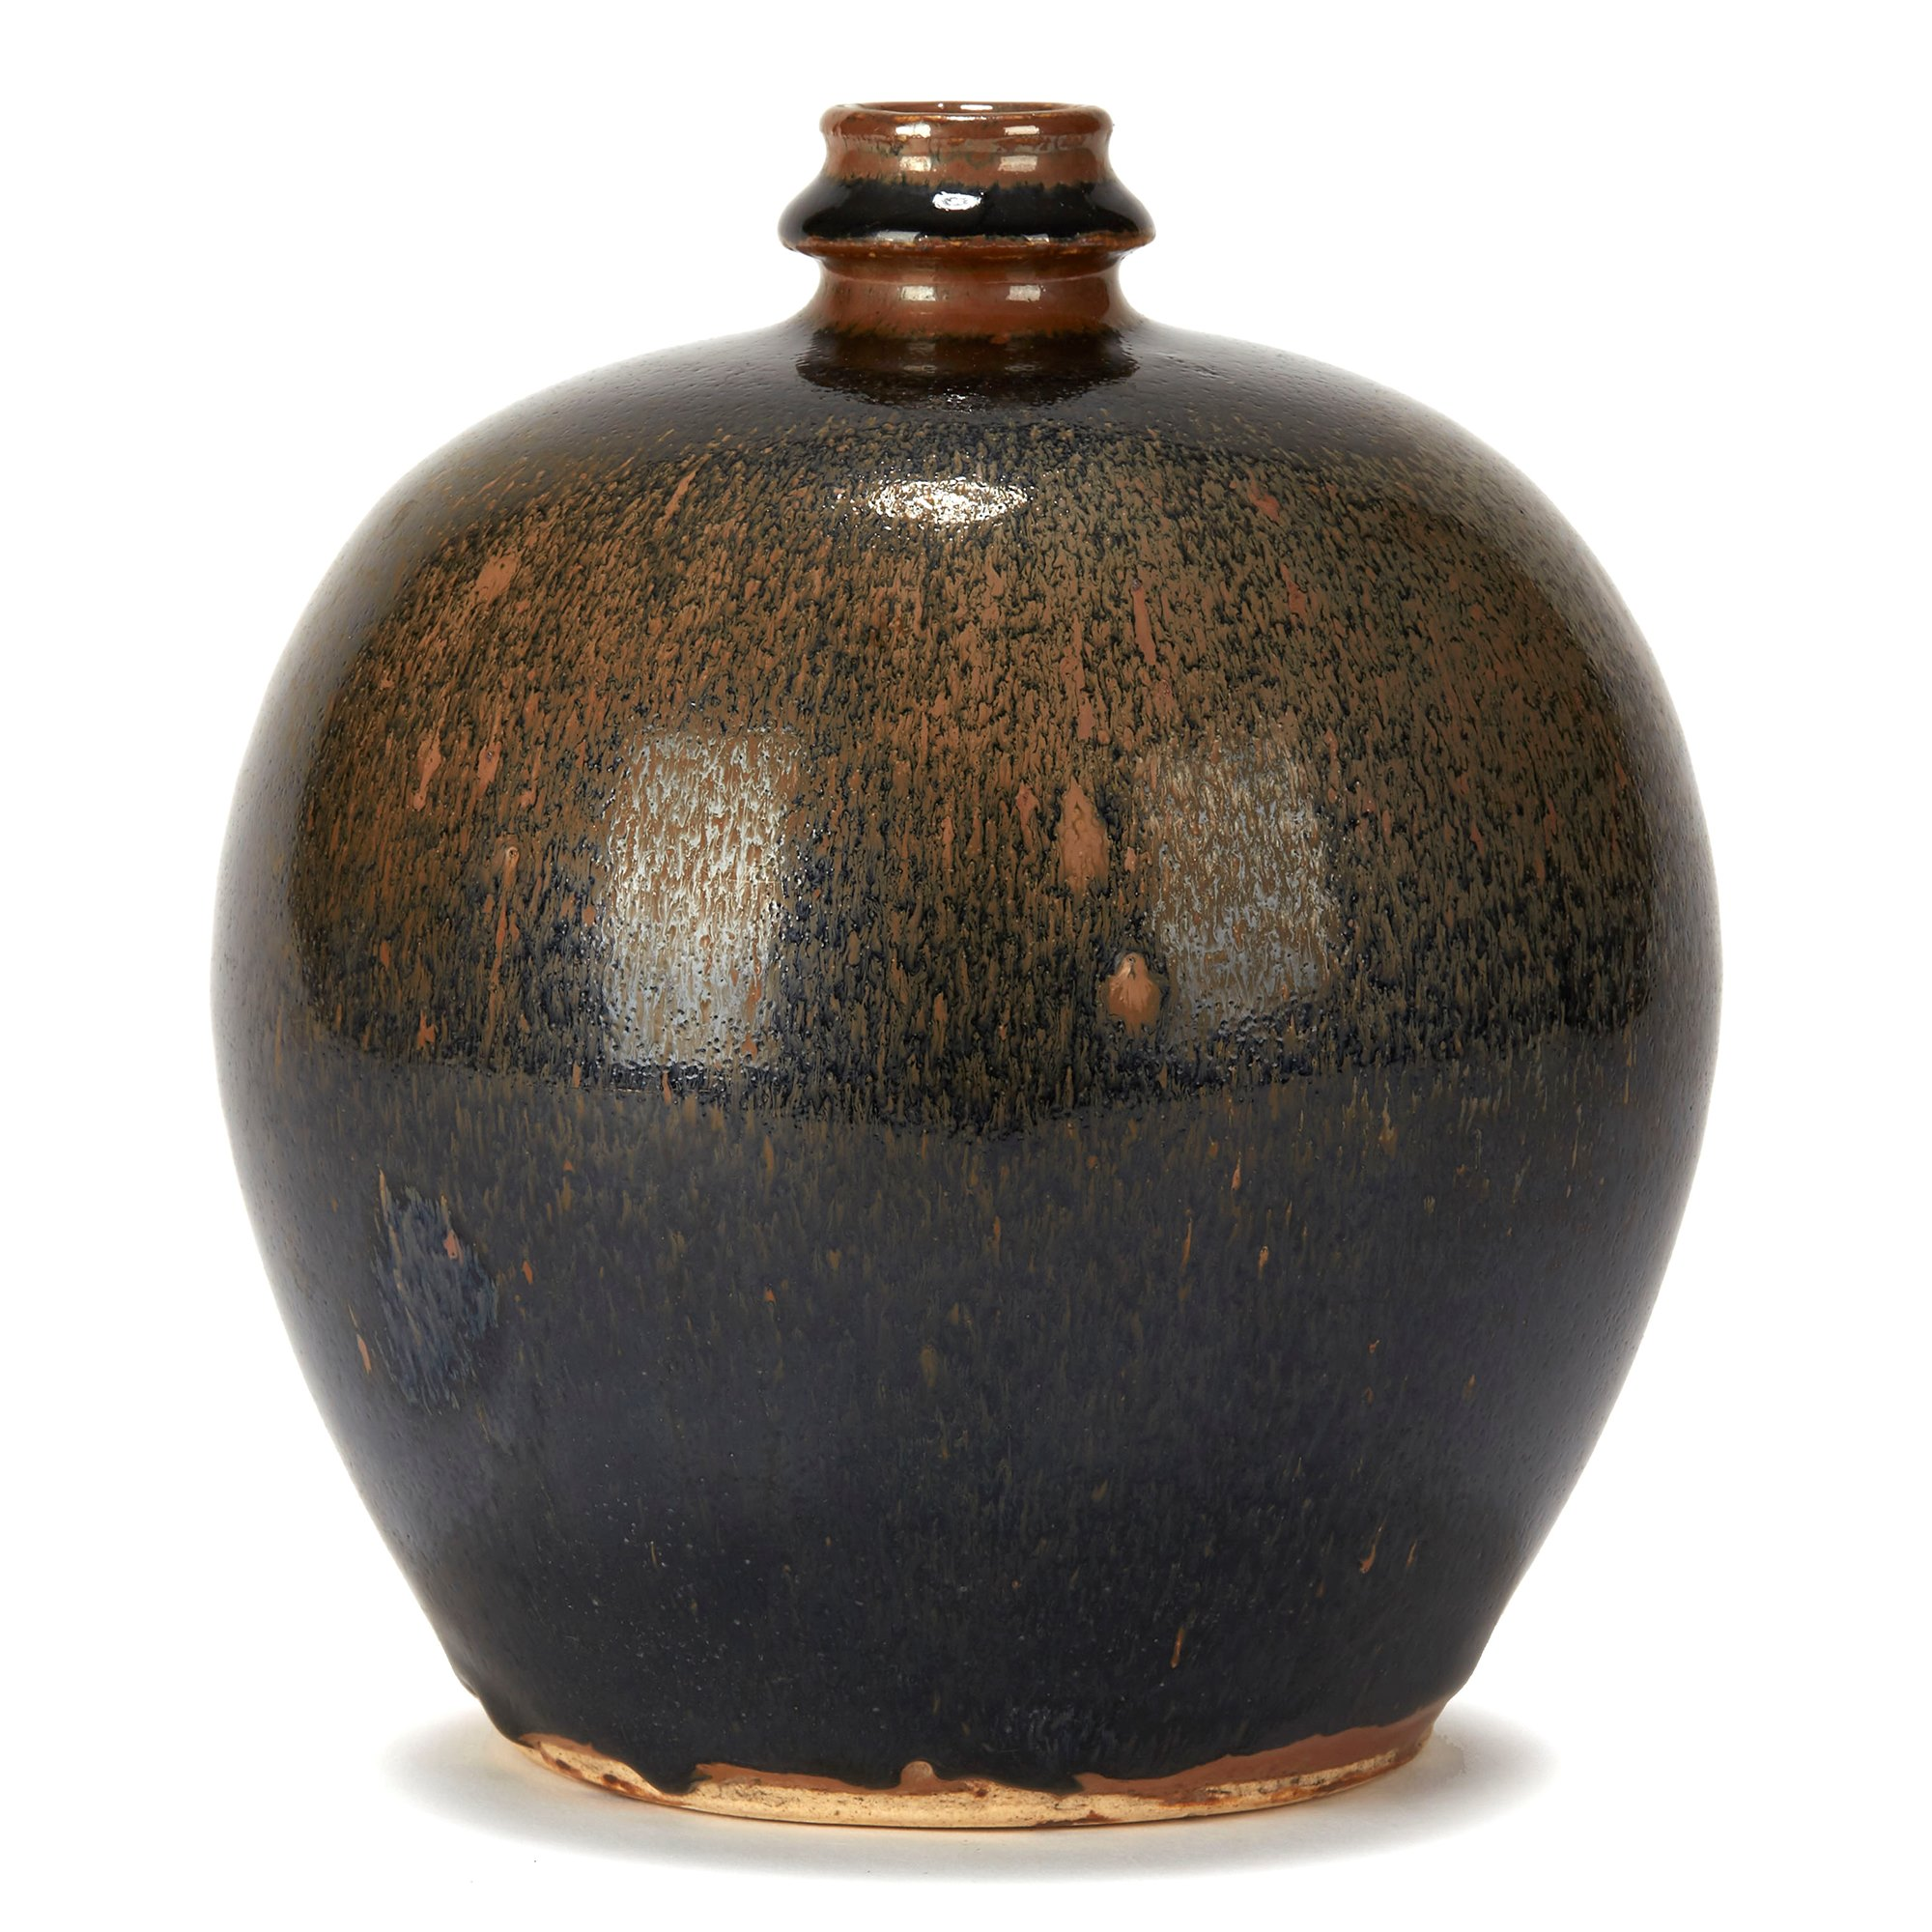 CHINESE HARESFUR GLAZED BULBOUS SONG STYLE POTTERY VASE Song style, 20th Century or possibly earlier